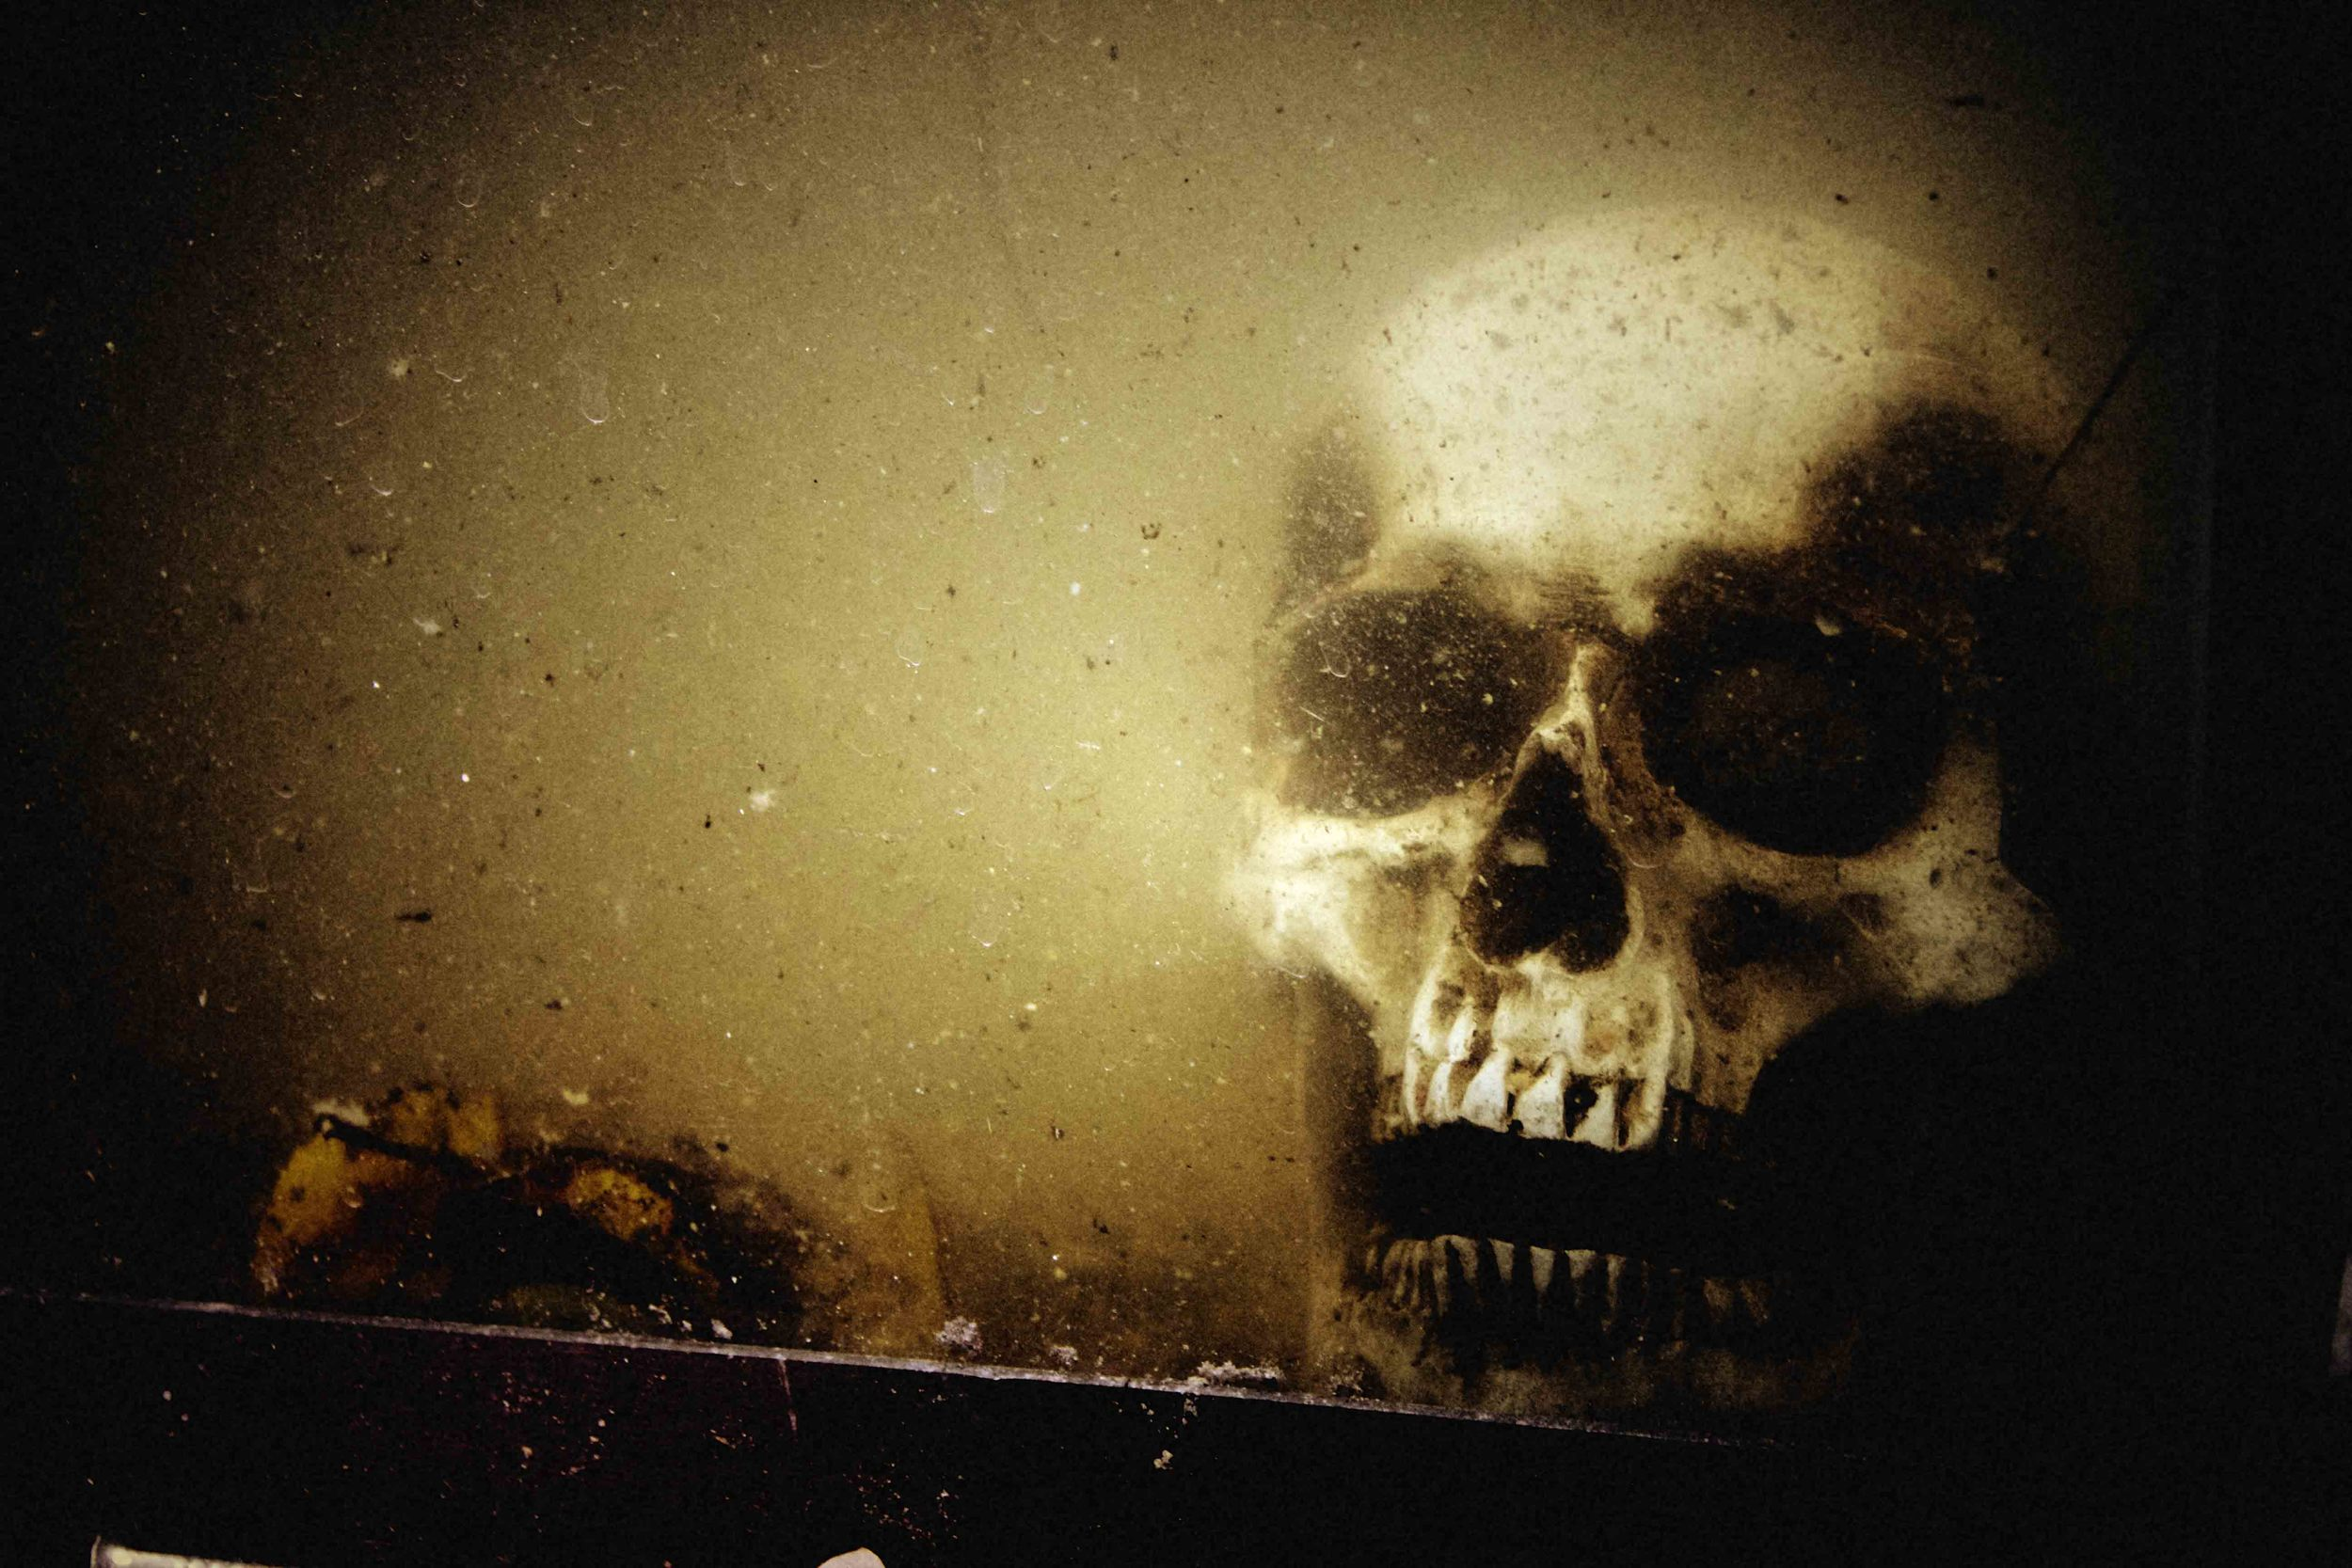 THE REEL OF HORROR - SKULL.jpg